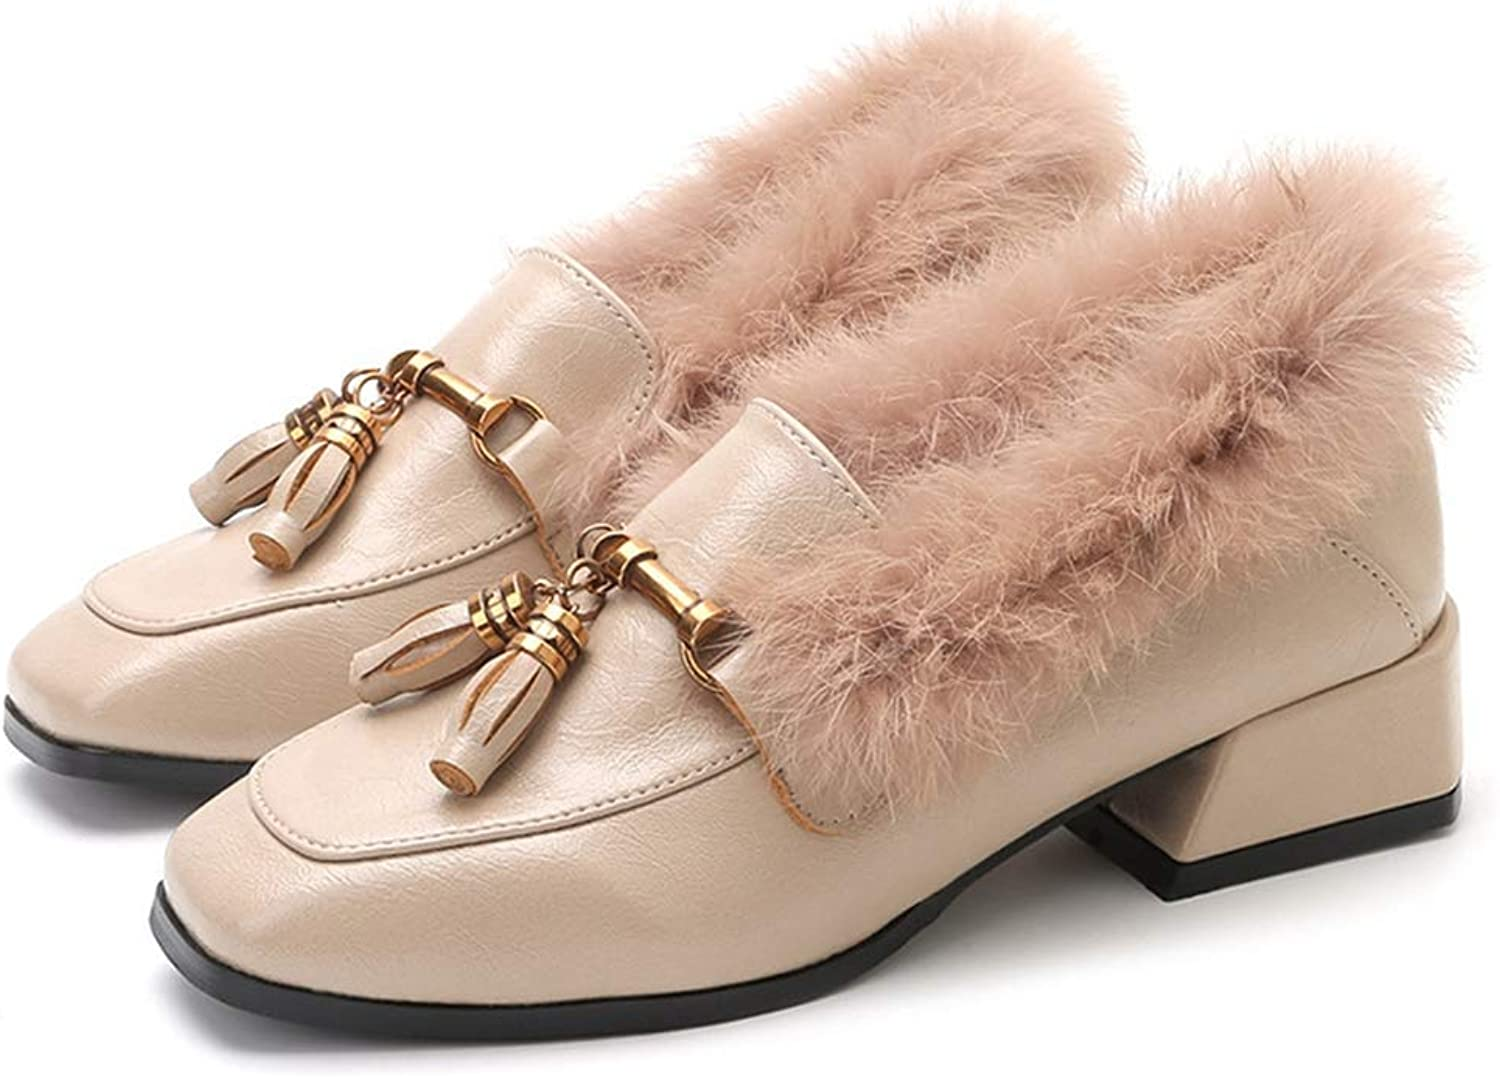 Fashion shoesbox Women's Penny Loafer shoes Warm Fur Metallic Chain Casual Slip On Low Heel Daily Walking shoes Loafers